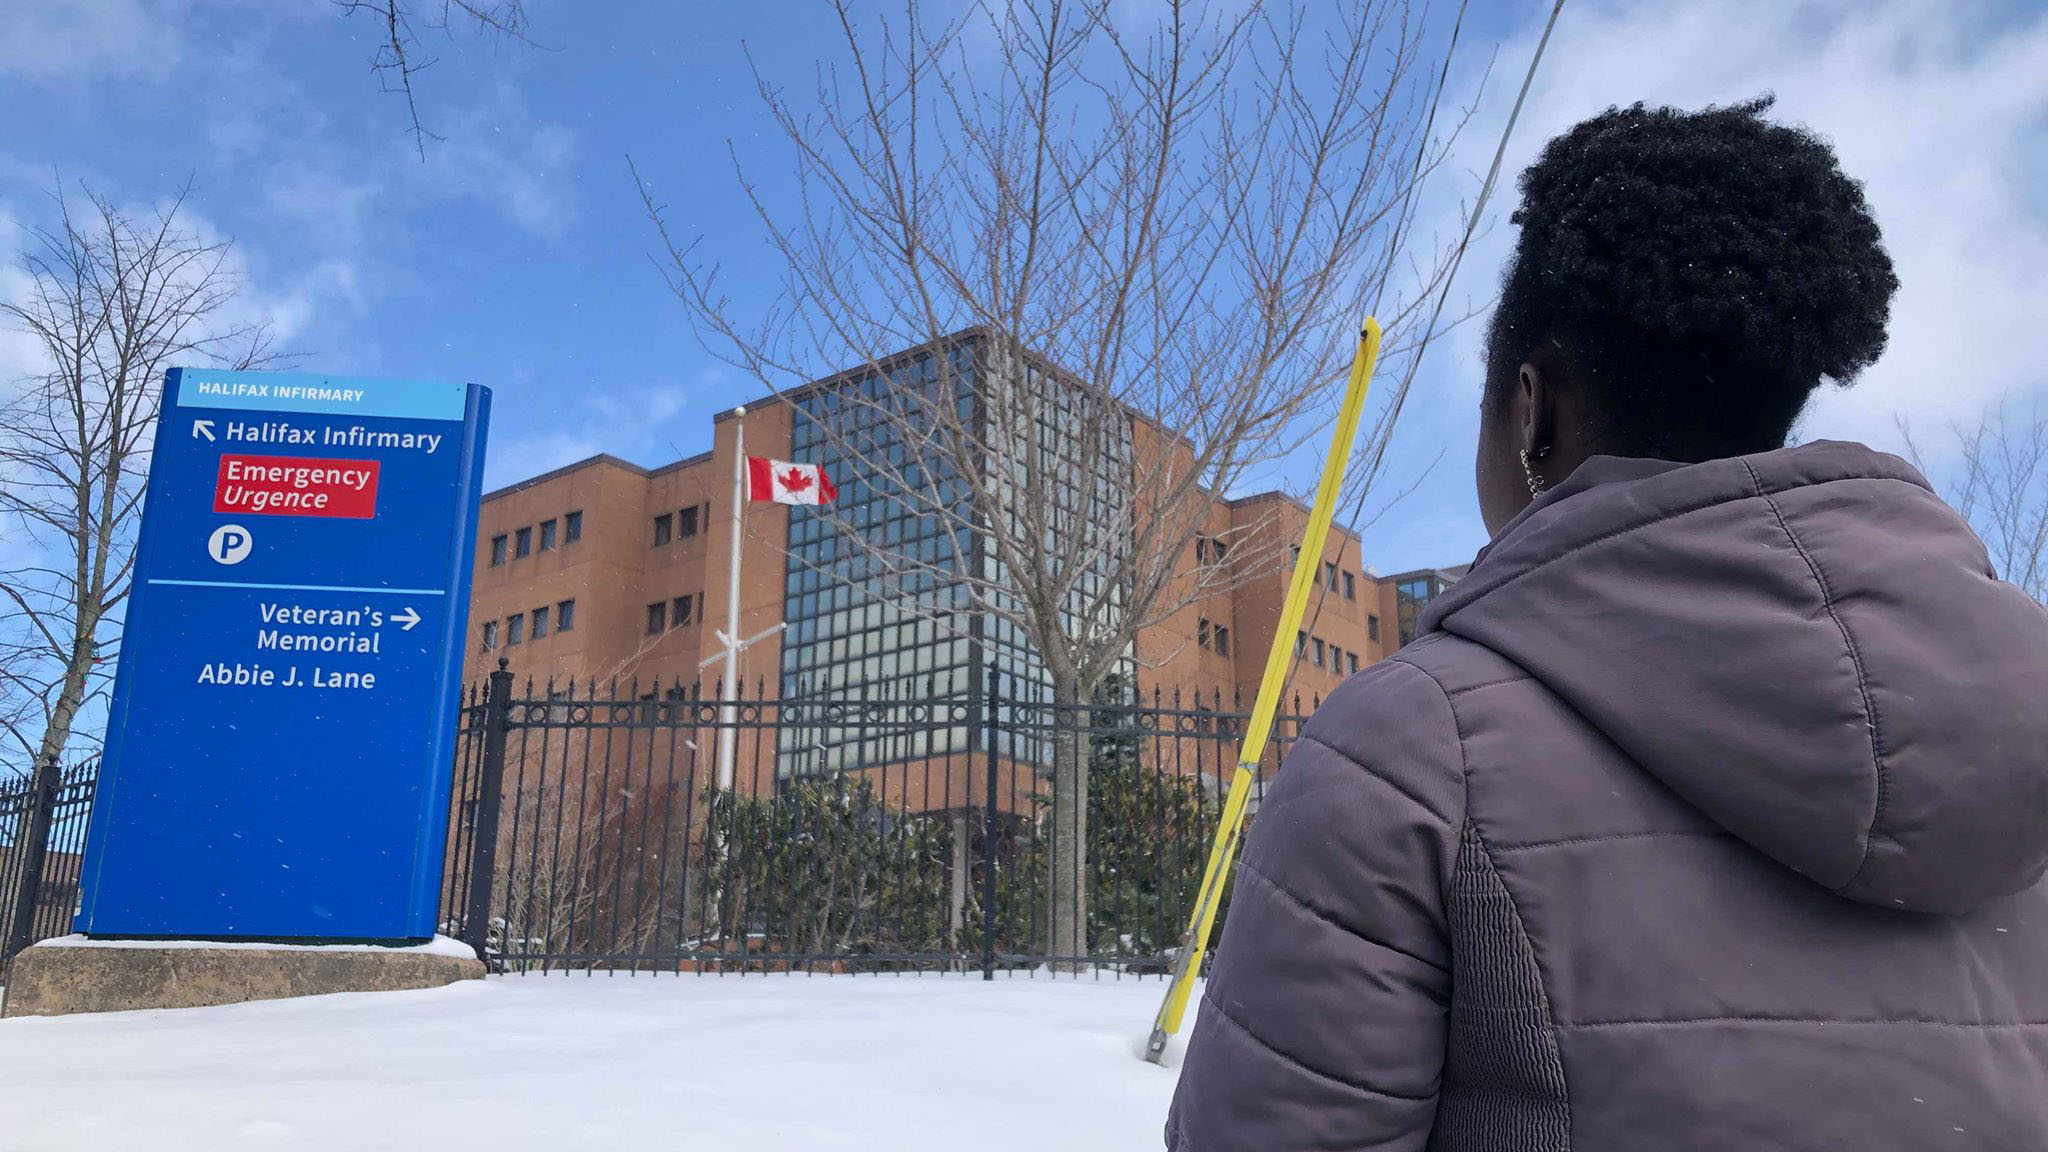 Experts say African Nova Scotians face particular health barriers.